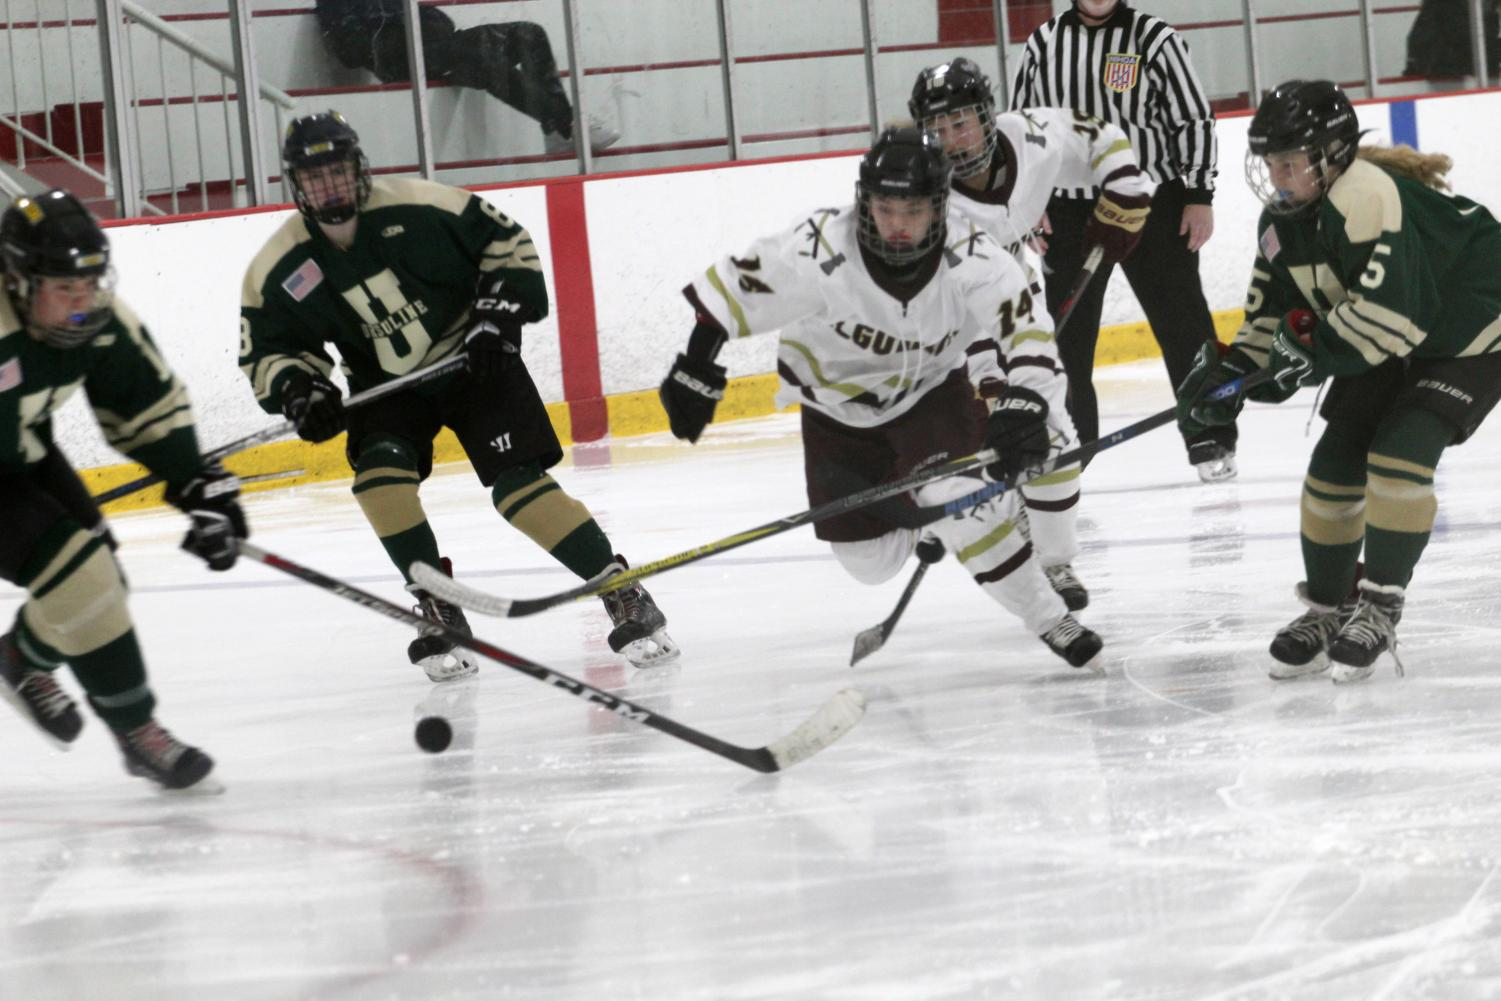 Algonquin sophomroe forward Averi Curran races after the puck to attempt a shot on Ursuline's goal. In her first year on the team Curran made a large impact.